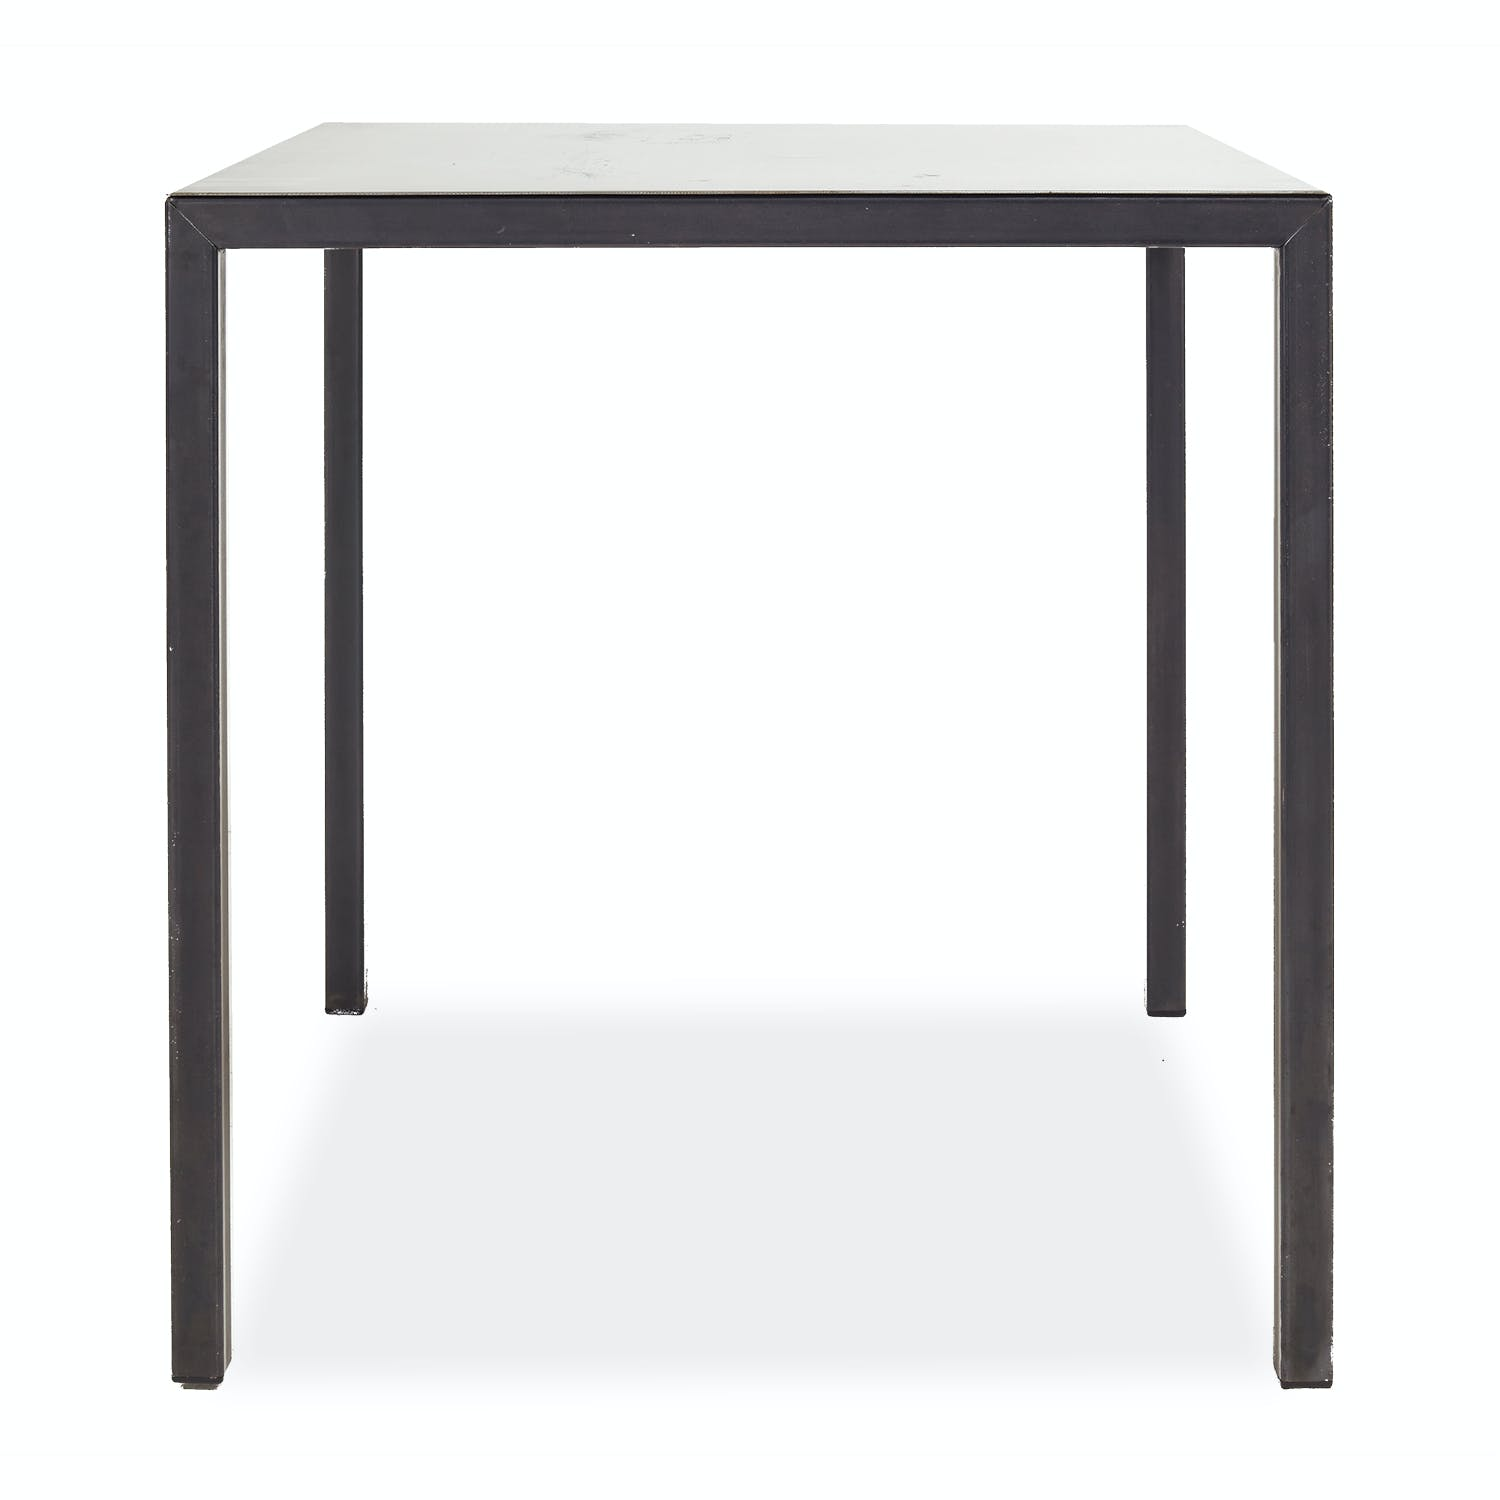 Product Image - Flatiron-Braze Steel Dining Table